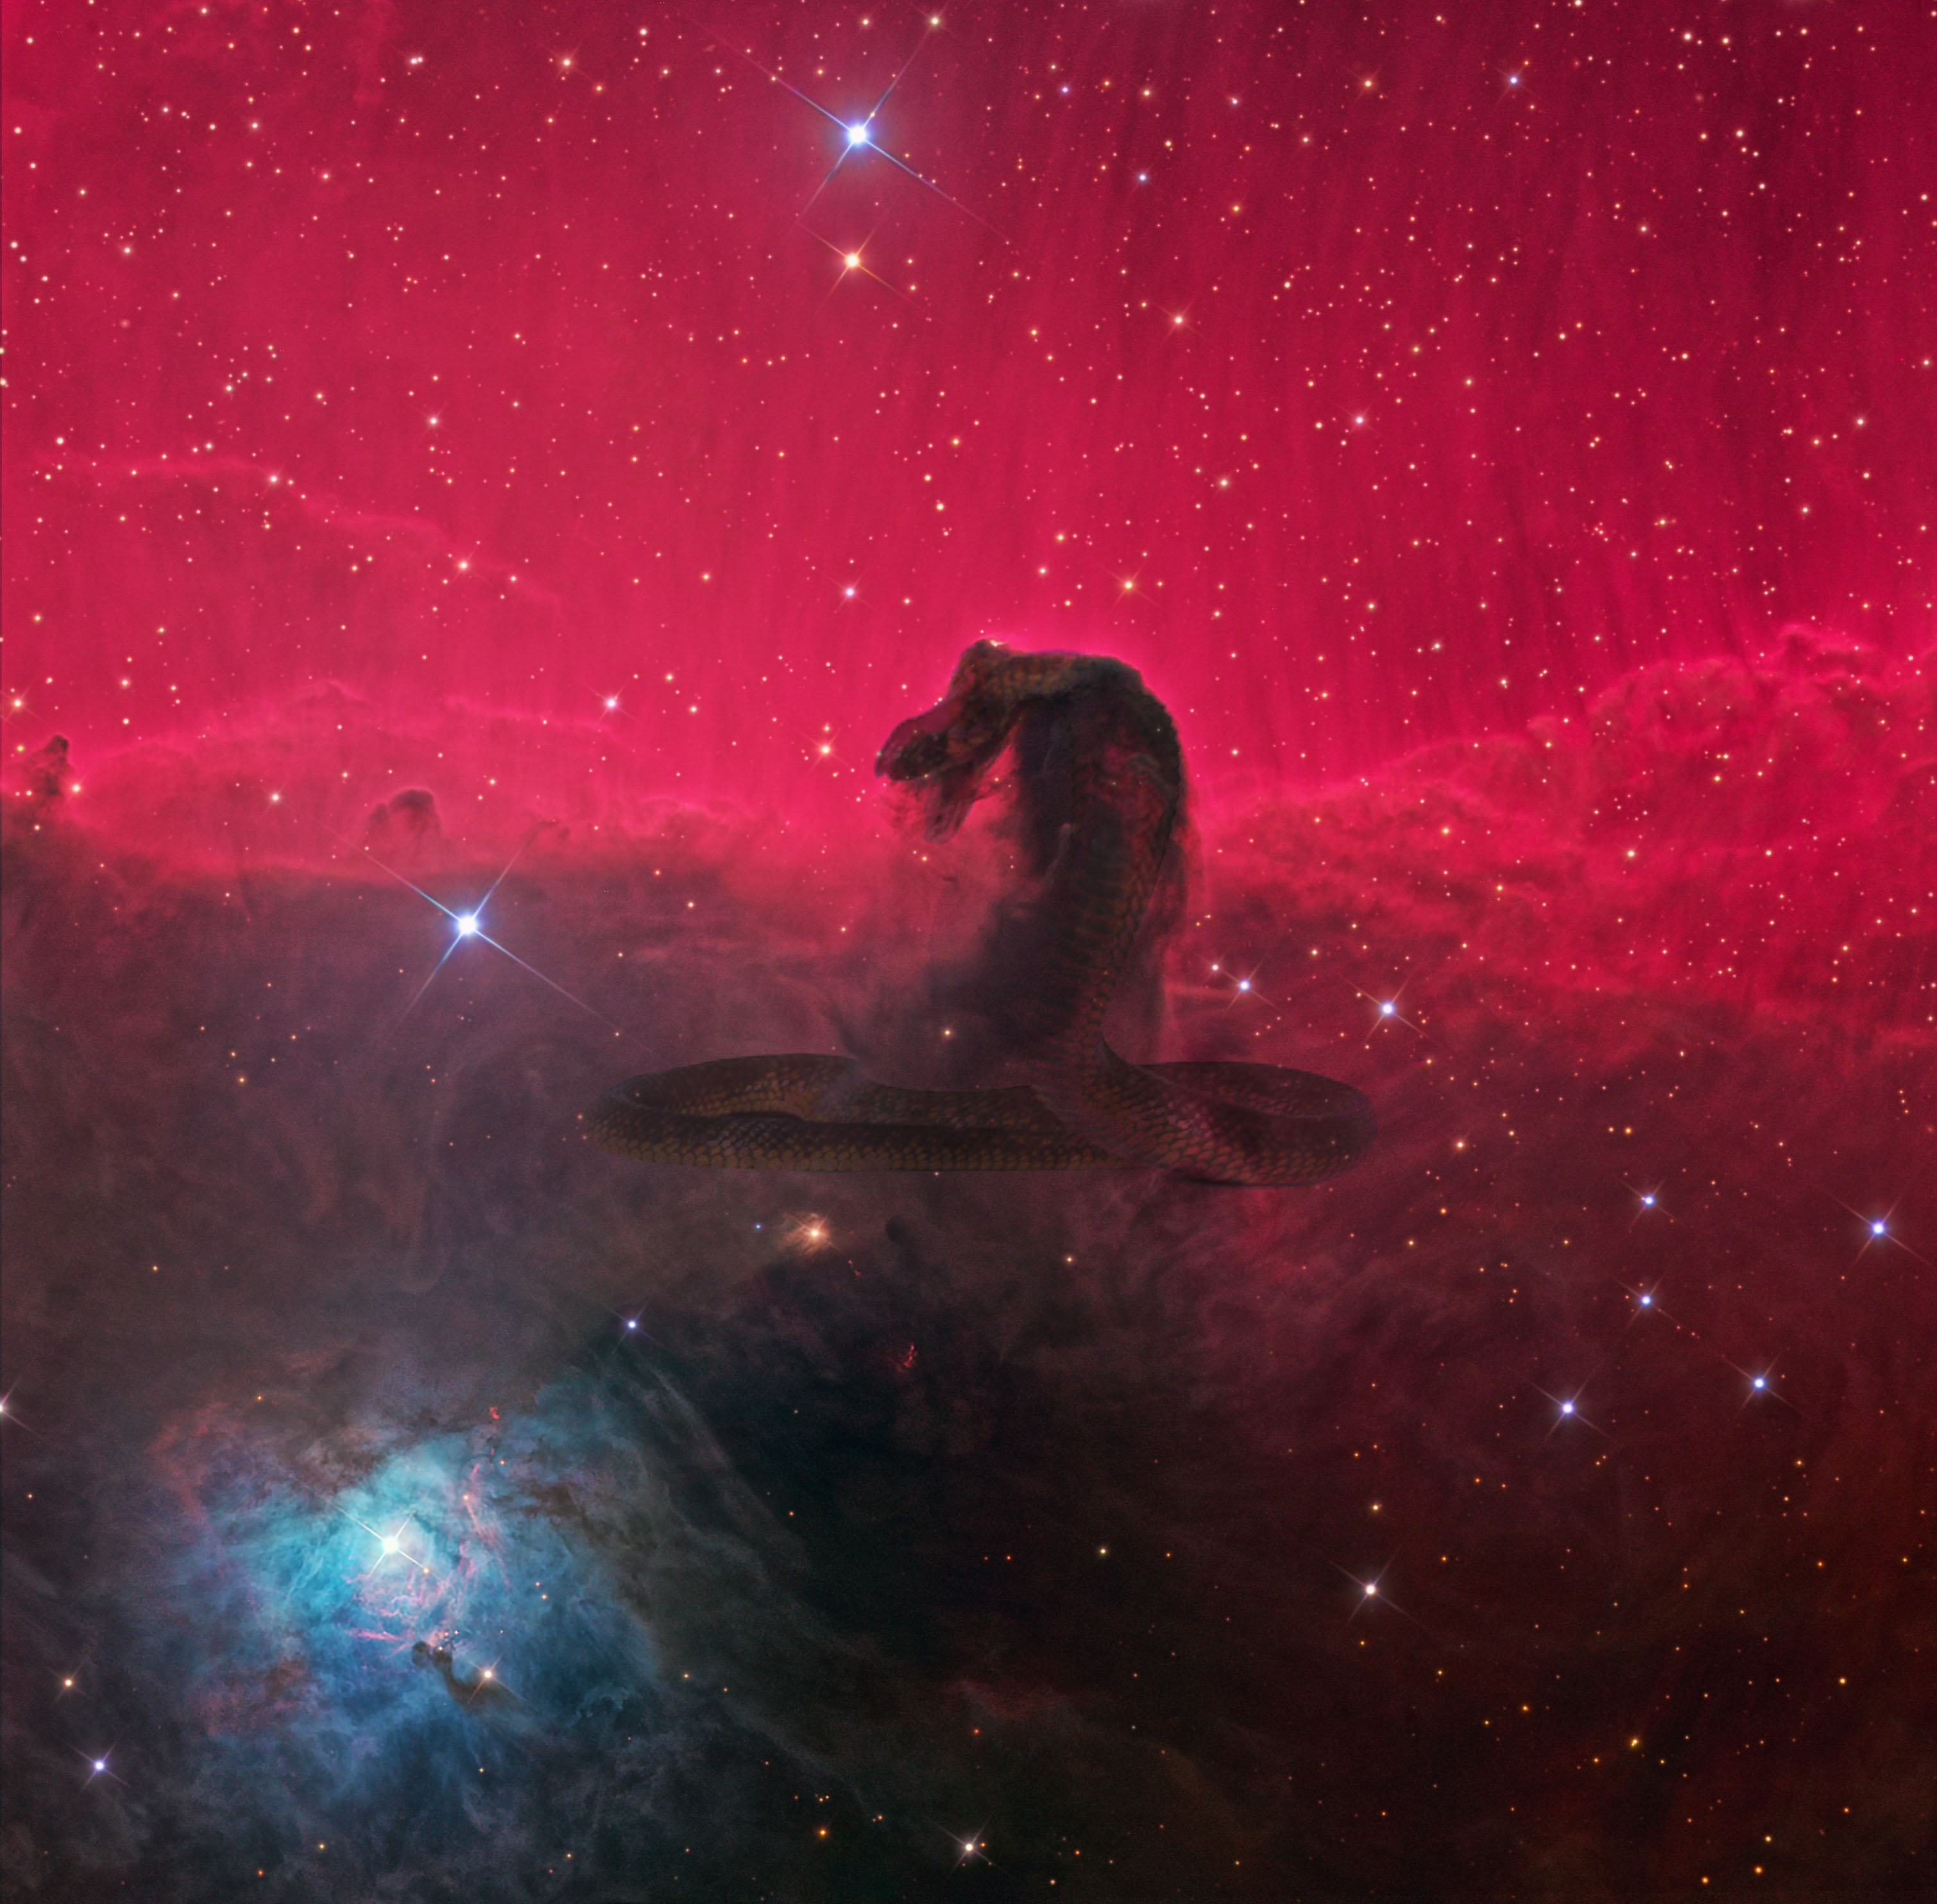 The Horsehead Nebula in Infrared from Hubble : space.